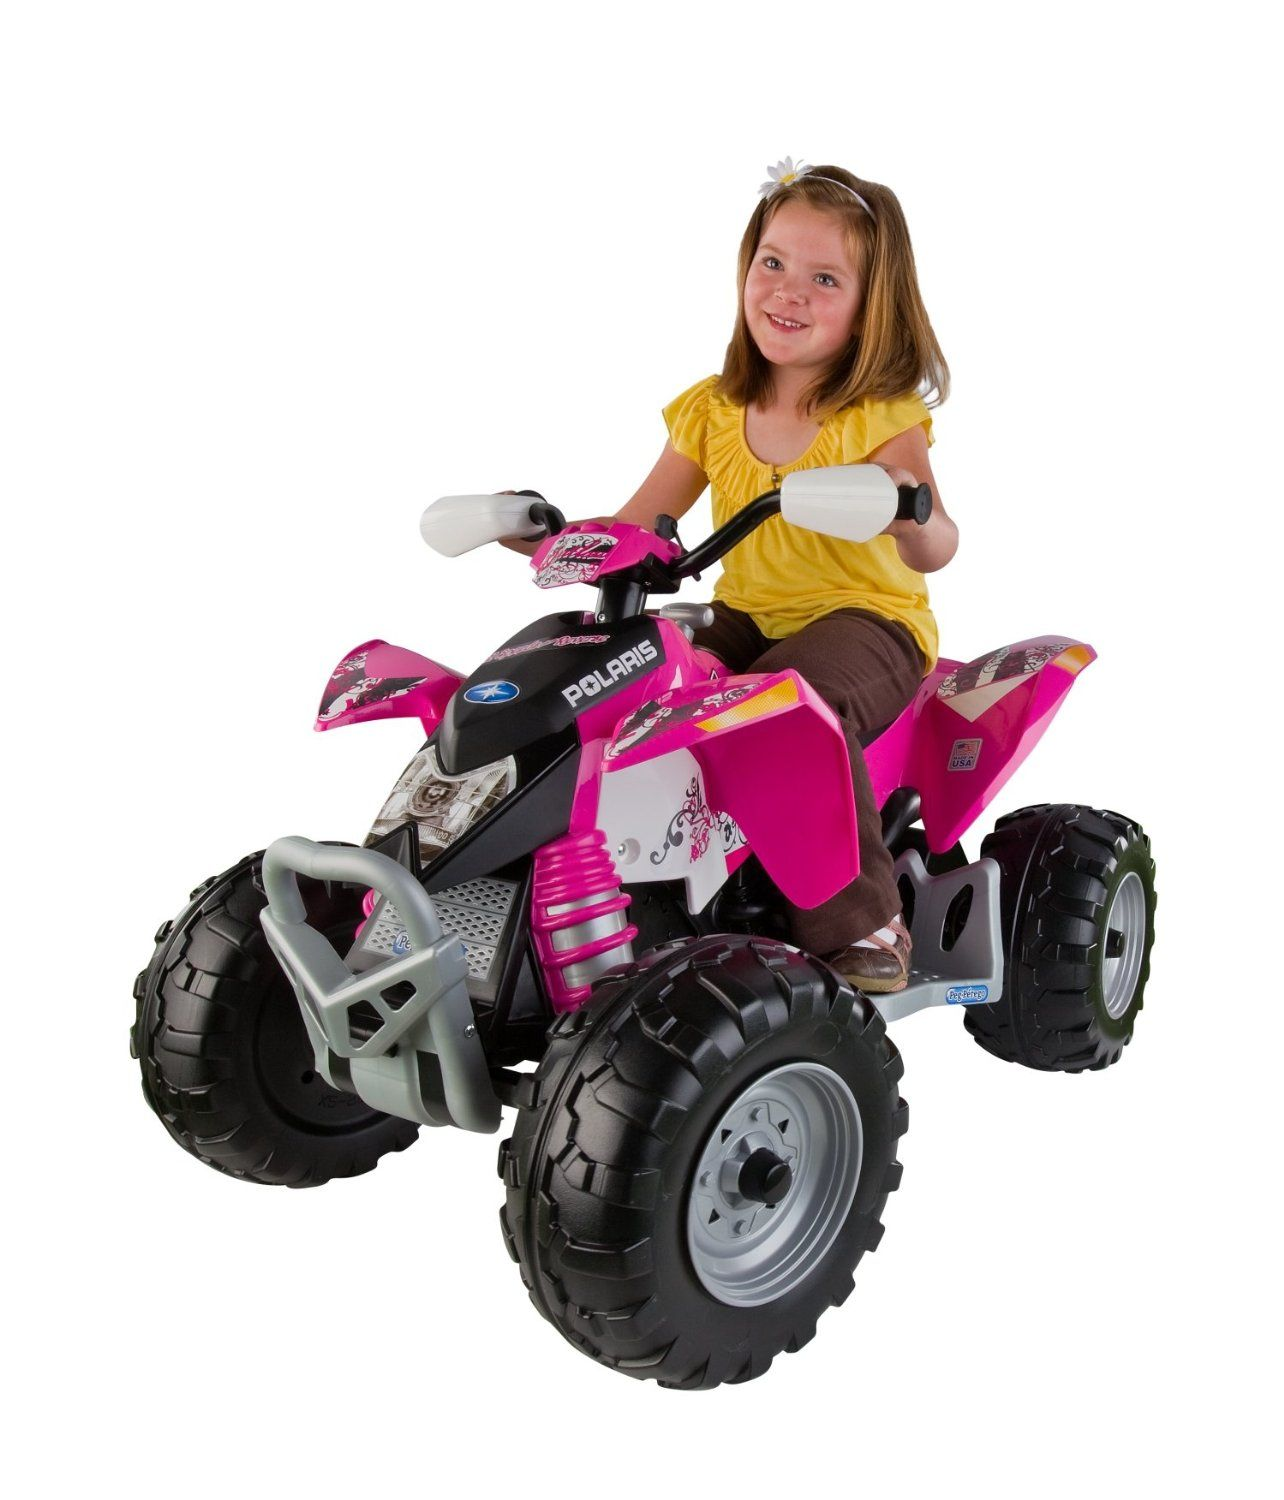 12 volt ride on toys for girls Best Outdoor Toys Part 2